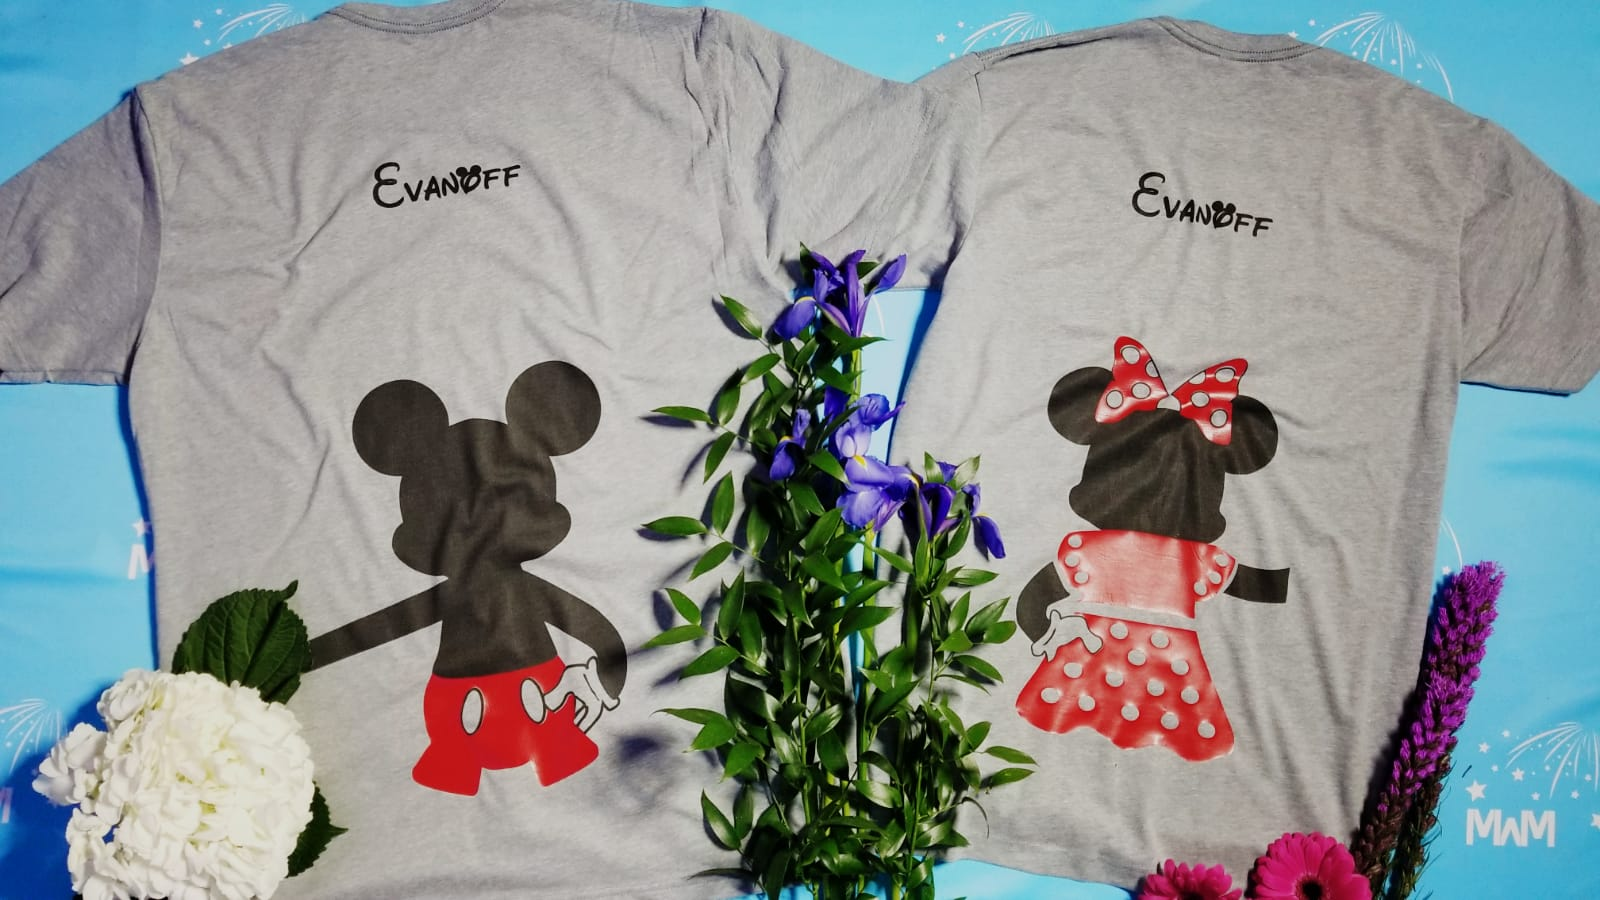 52ecfa8e9 Mr and Mrs World's Cutest Matching Couple Shirts, Mickey Minnie Mouse  Holding Hands, Disney